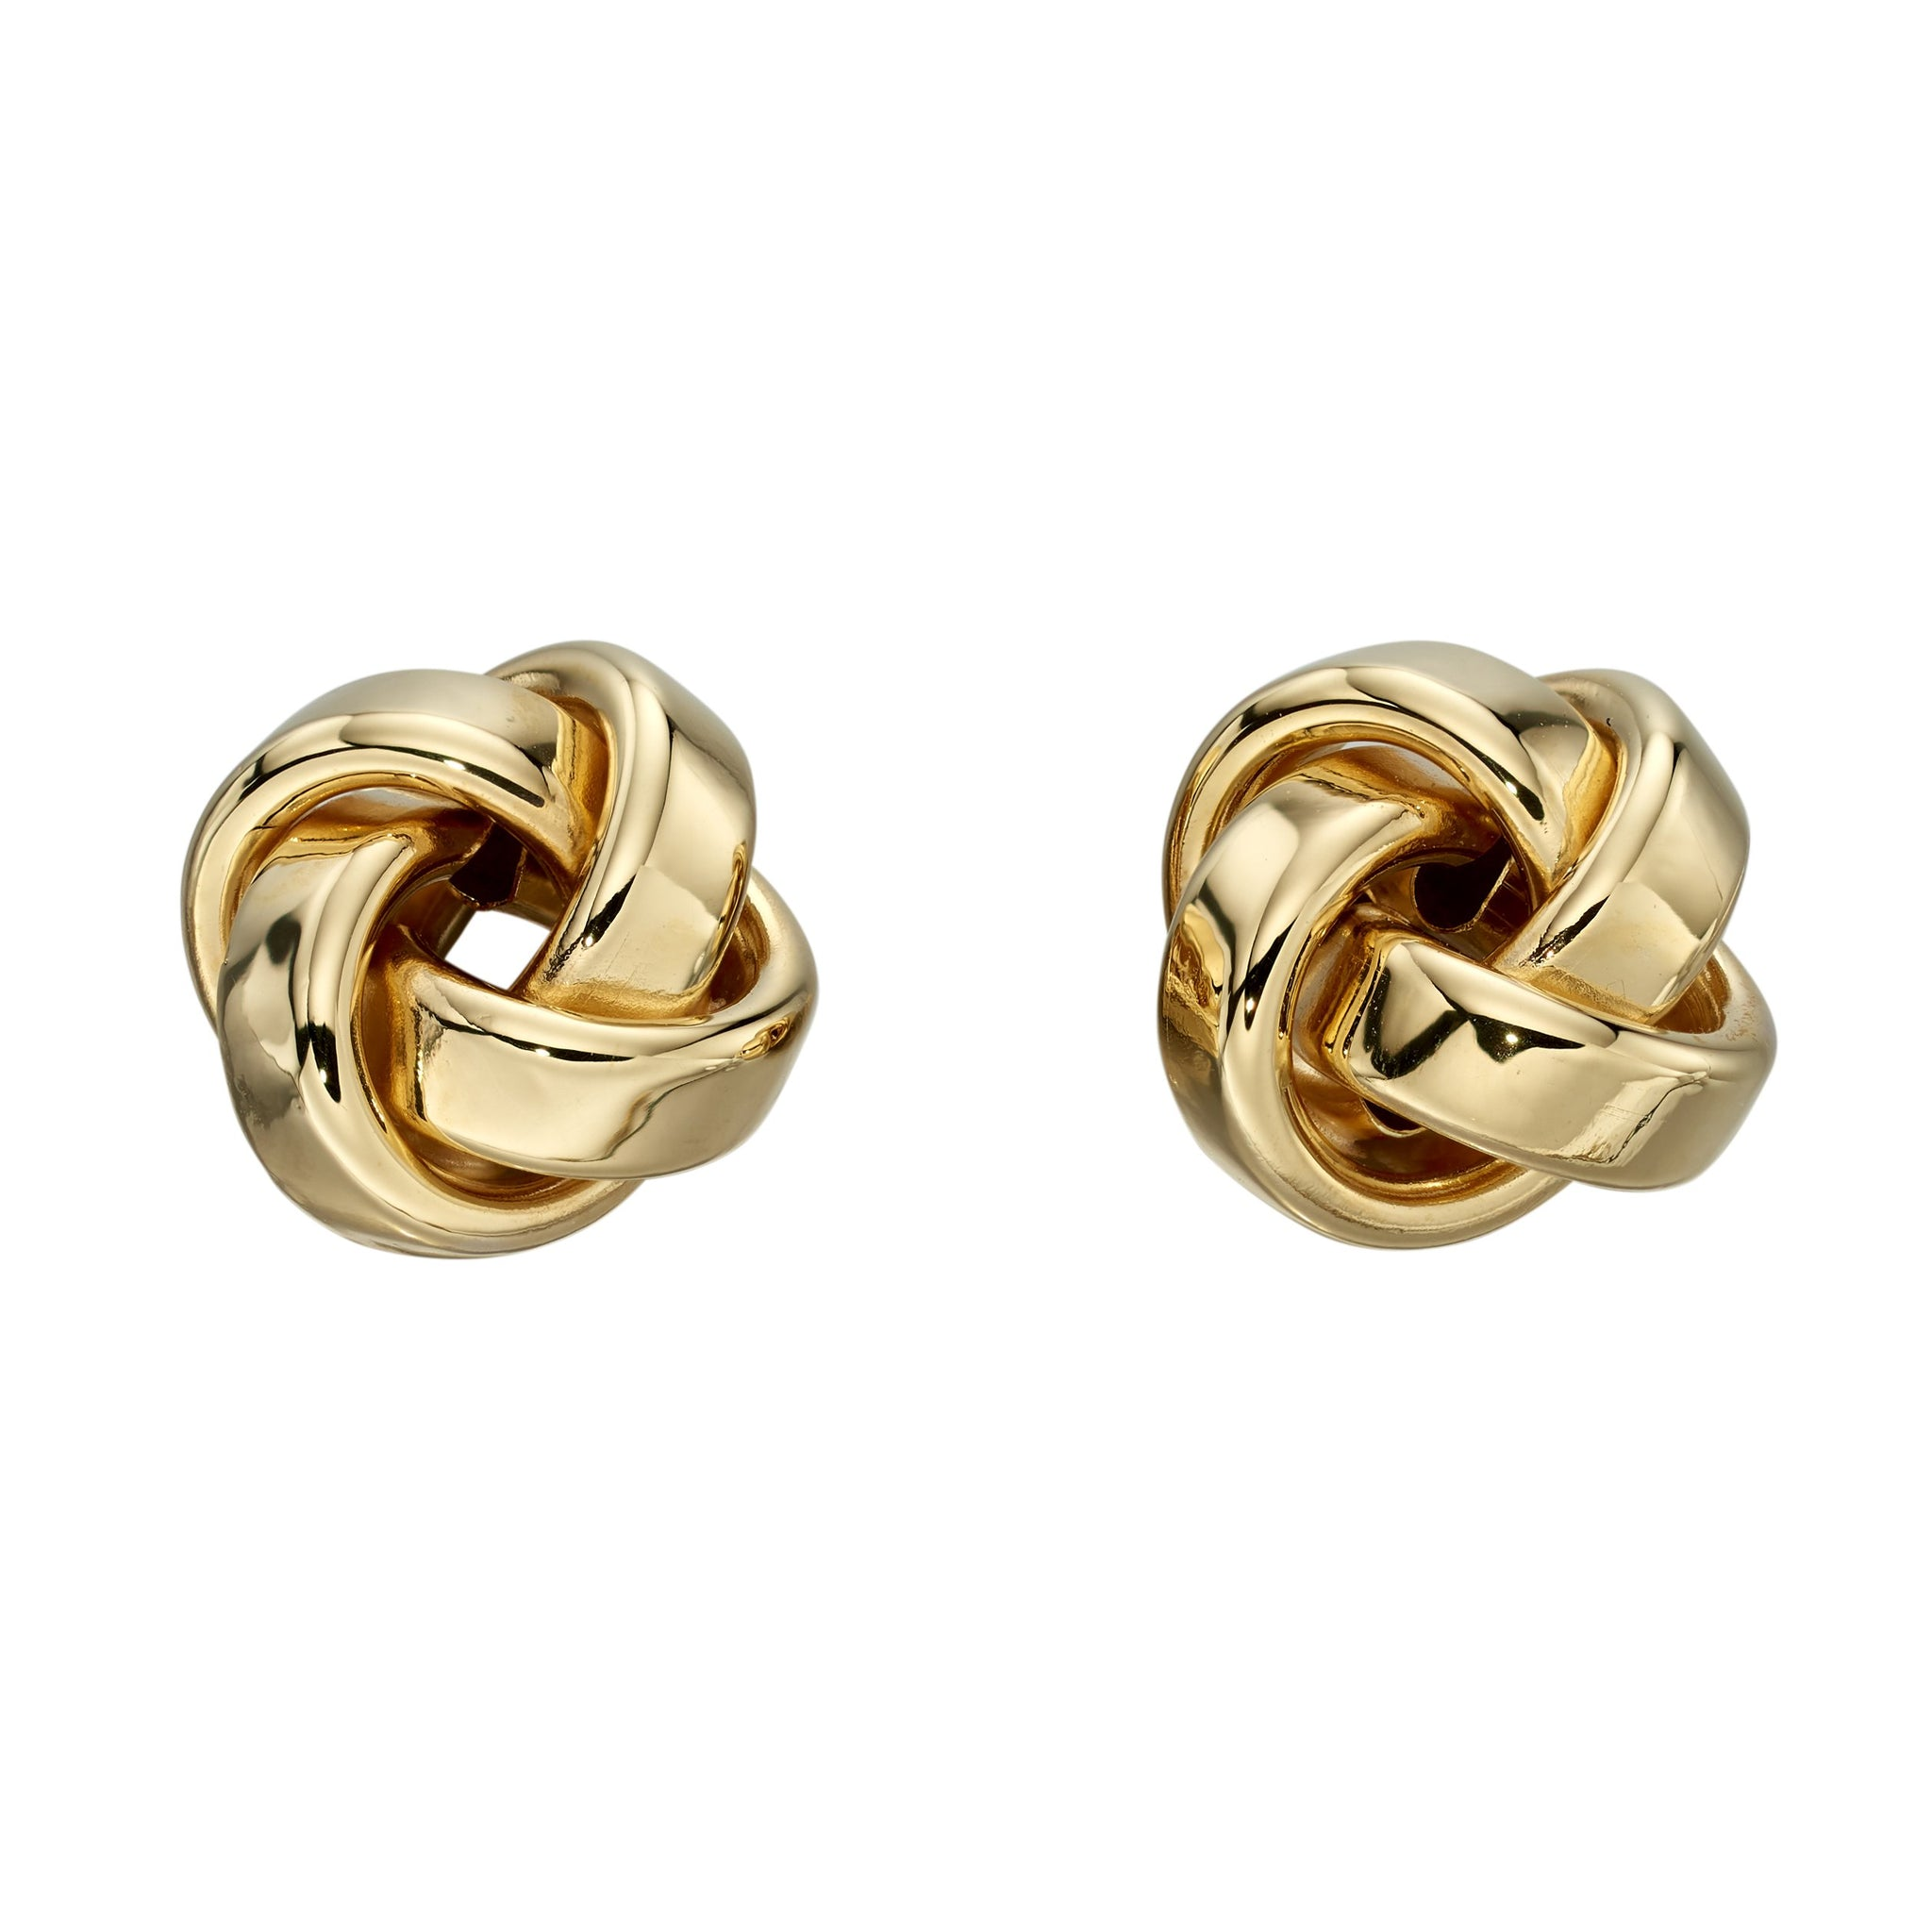 9ct Gold Knot Stud Earrings by Elements Gold (GE2201) - Charming and trendy Ltd